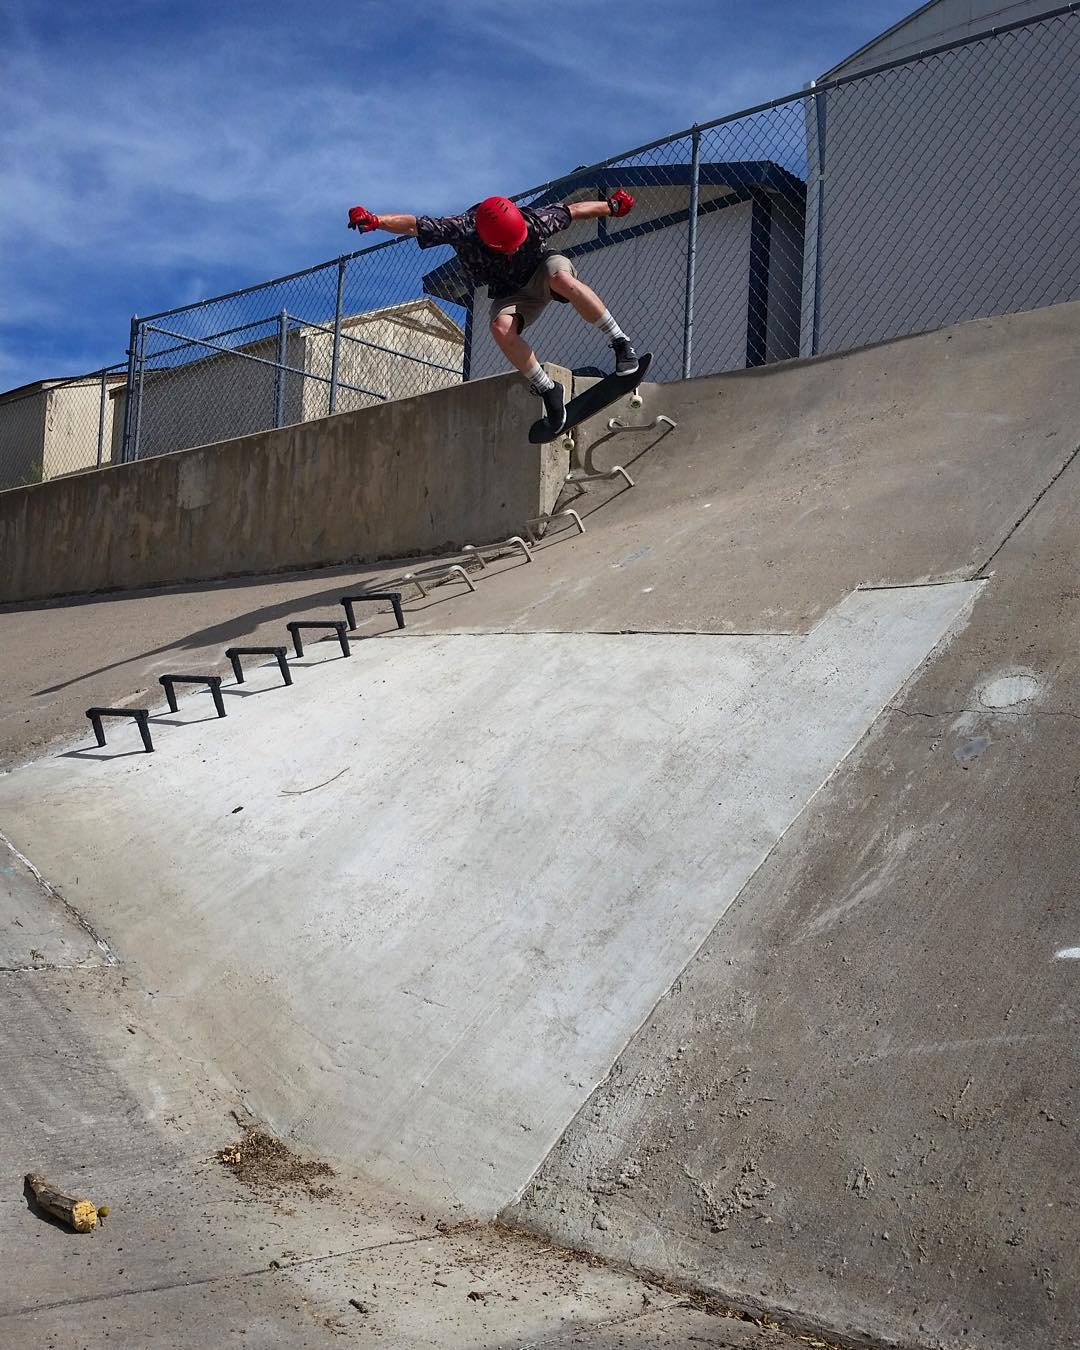 @jimmywesterson always has the best spots!  Wallie over the ladder and into another level of speed!